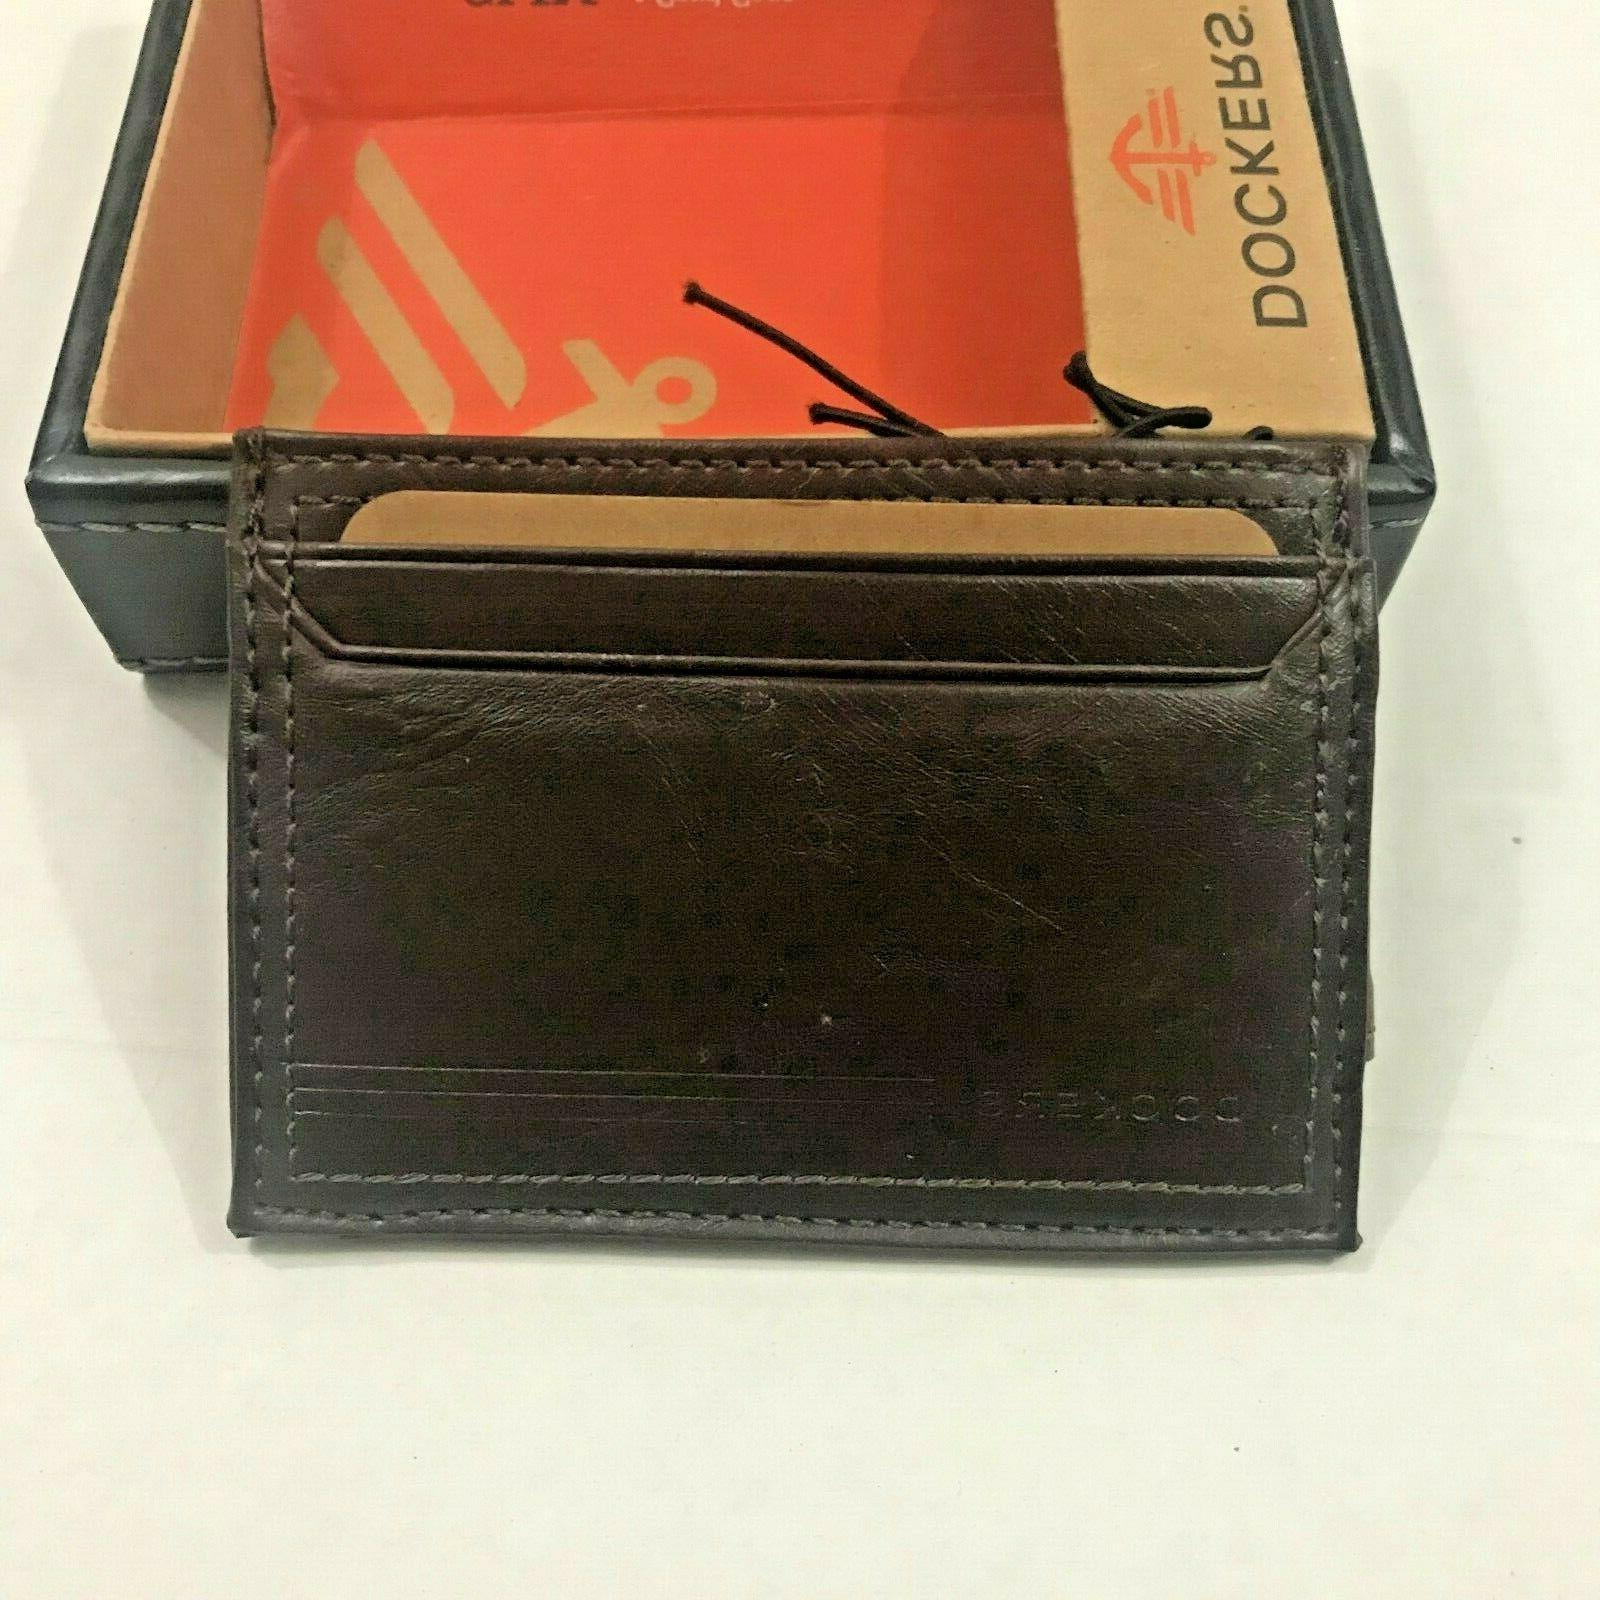 Dockers Wallets Leather Front Pocket Wallet